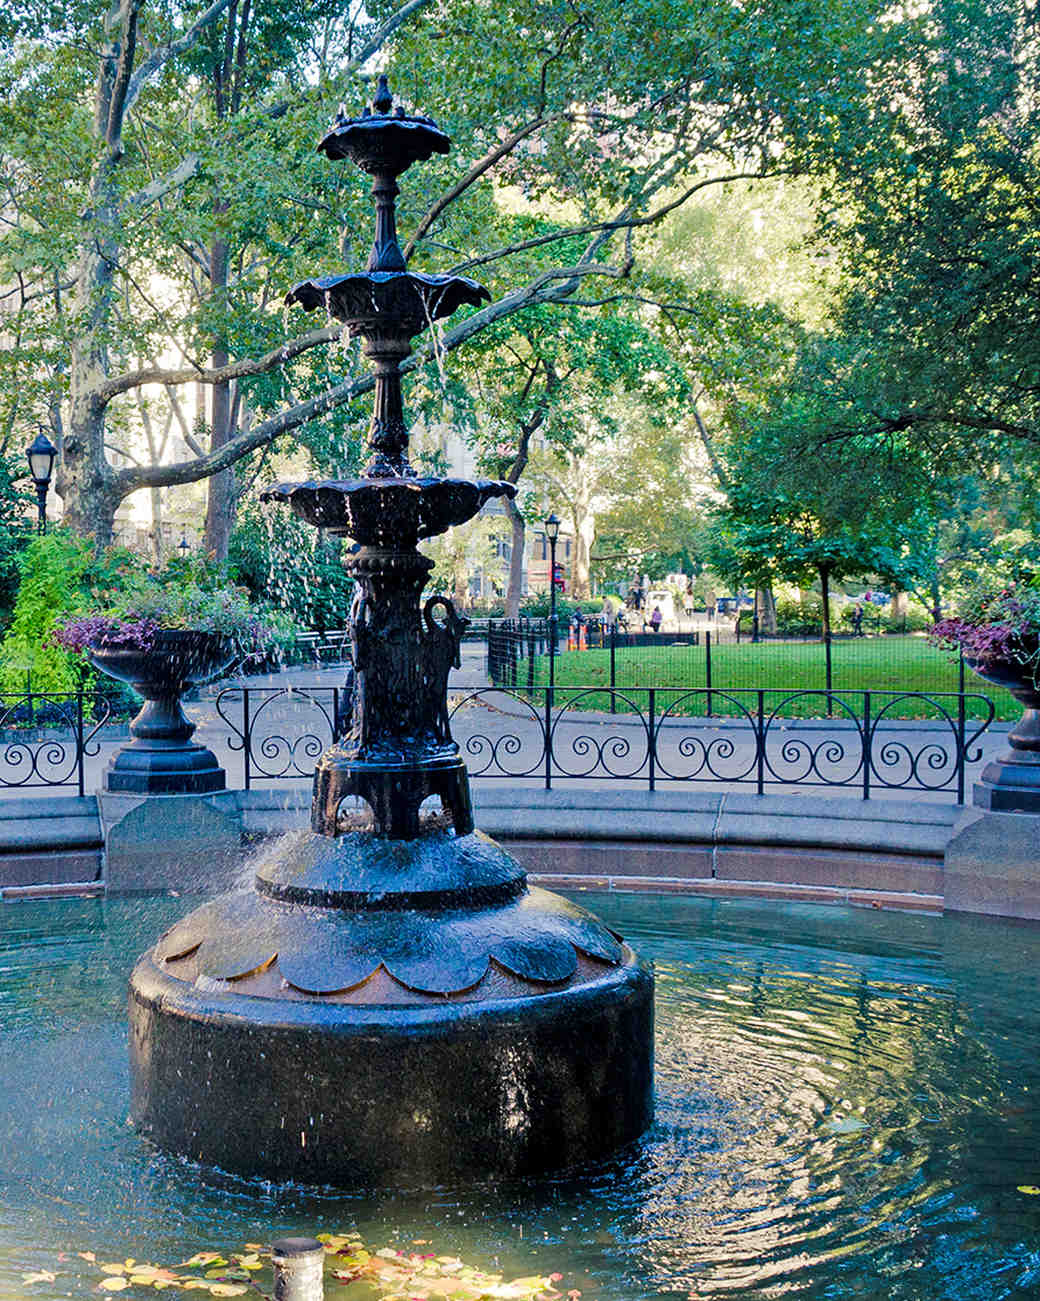 nyc-proposal-spot-madison-square-park-fountain-1114.jpg